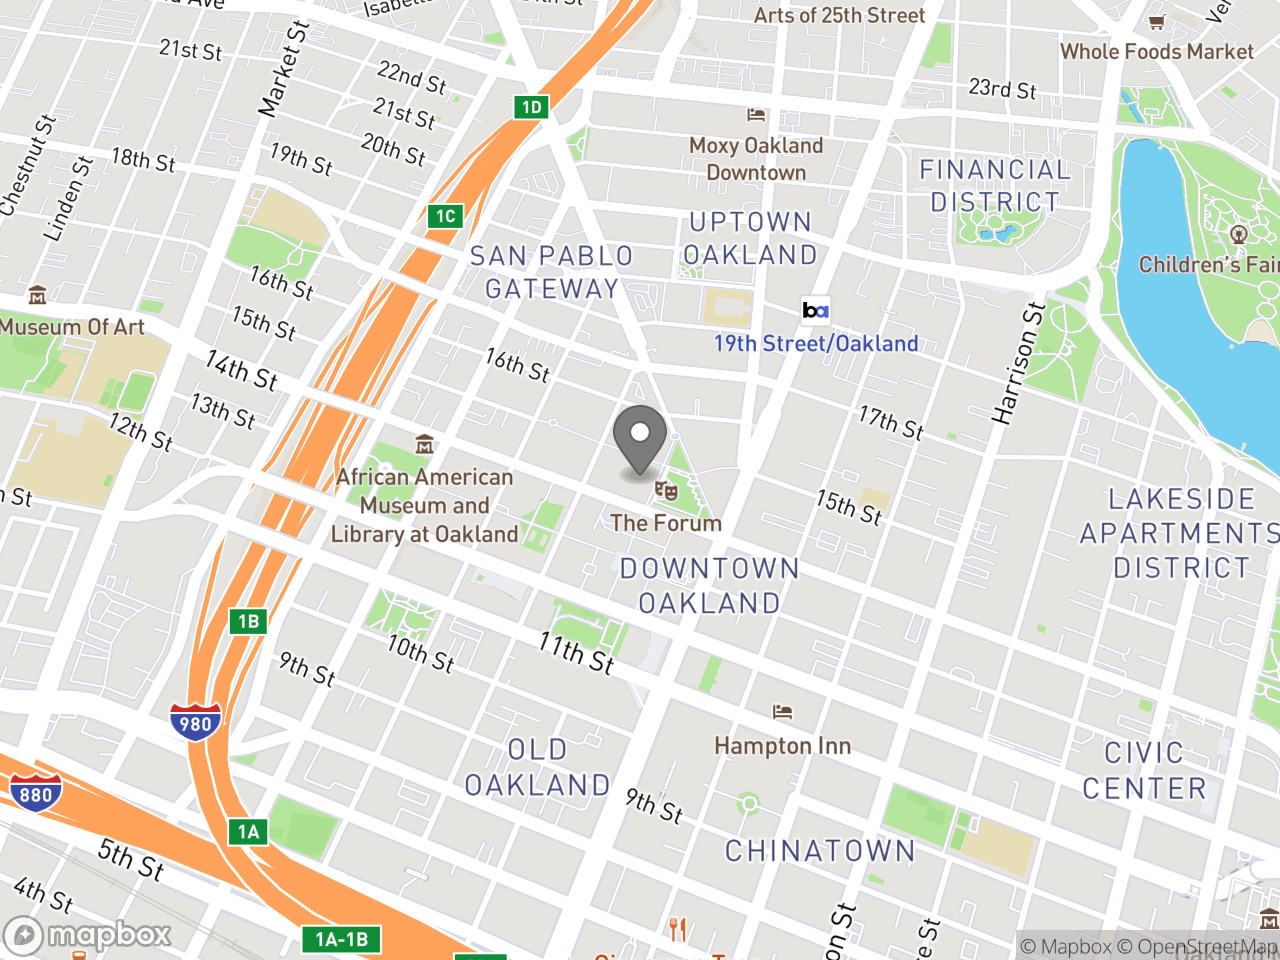 Map location for Public Ethics Commission Monthly Meeting, located at 1 Frank H Ogawa Plaza in Oakland, CA 94612